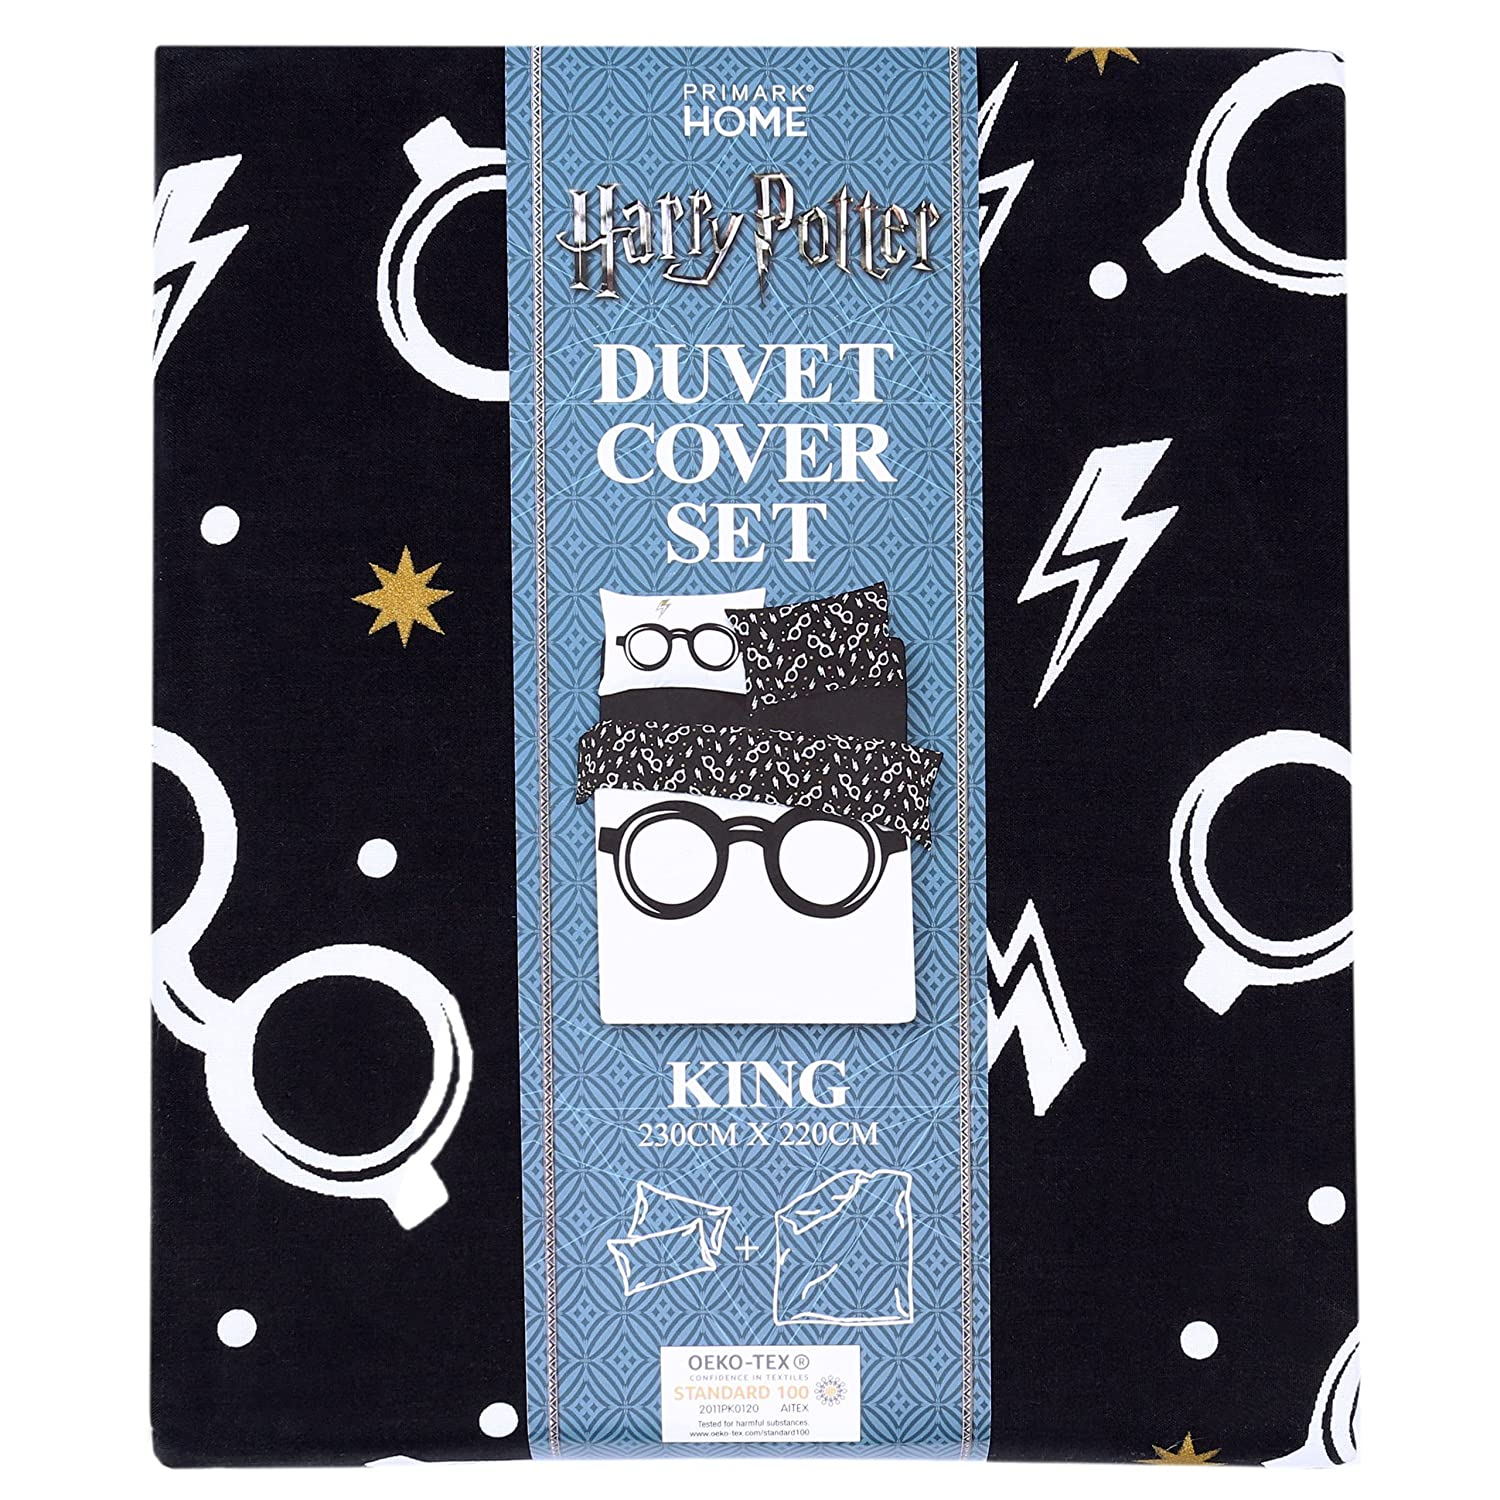 Juego De Cama Blanco Y Negro 230x220 Harry Potter Harry Potter